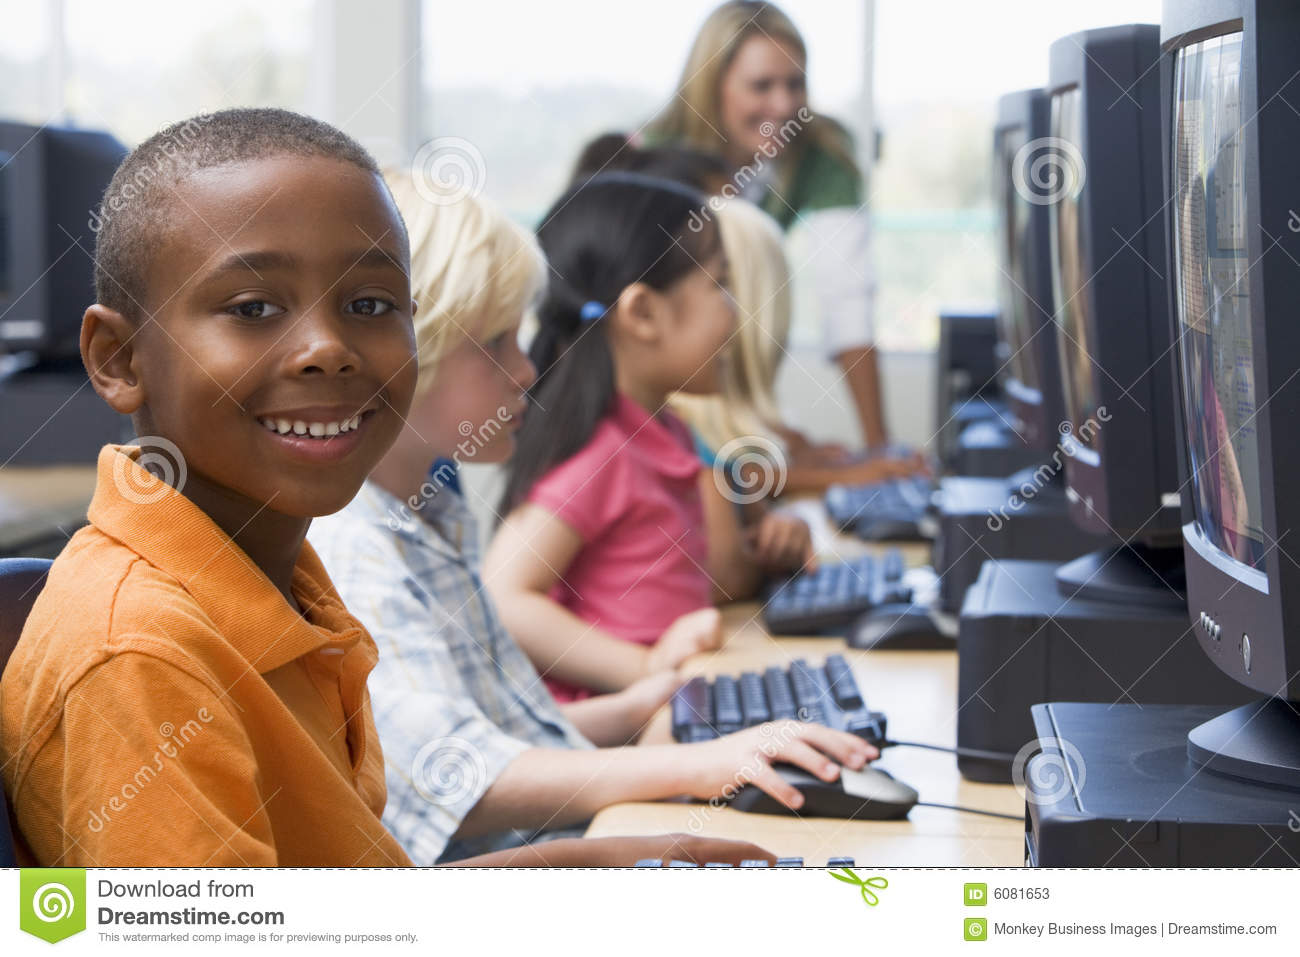 Stock Photos: Kindergarten children learning to use computers: dreamstime.com/stock-photos-kindergarten-children-learning-to-use...